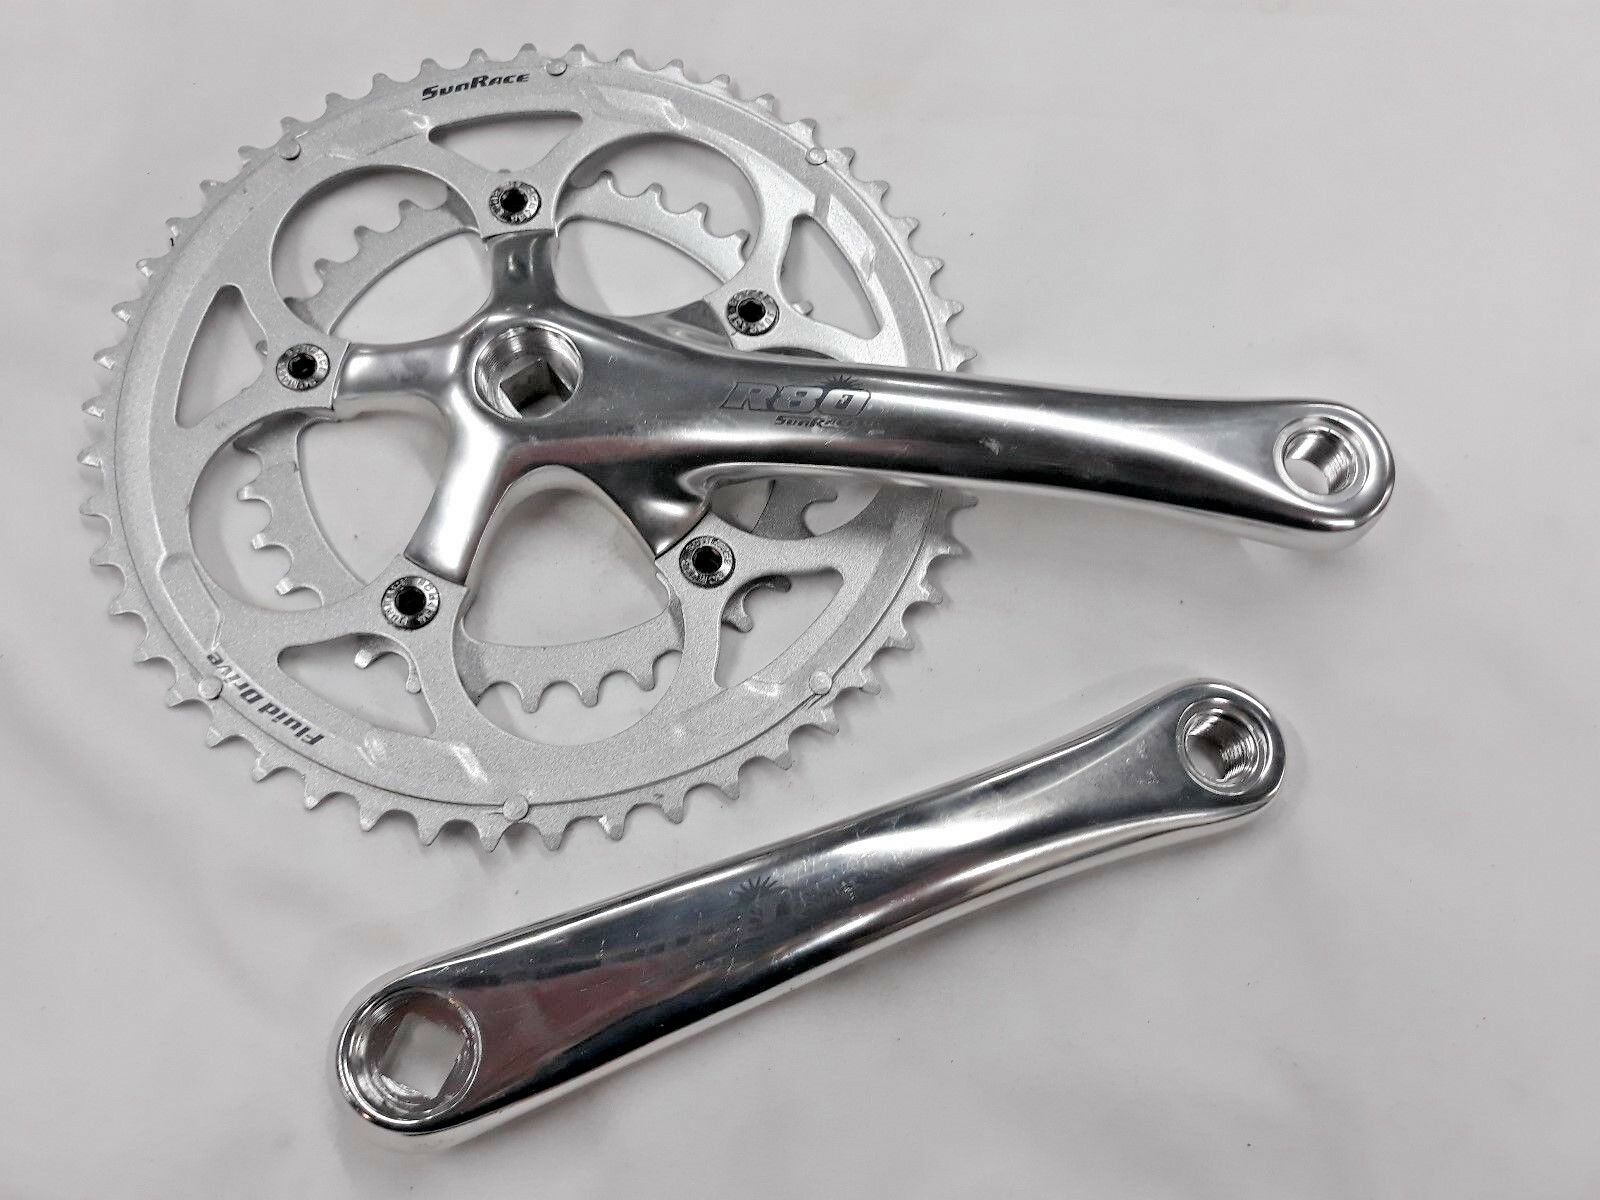 USED SUNRACE DOUBLE RING CRANKSET 170MM